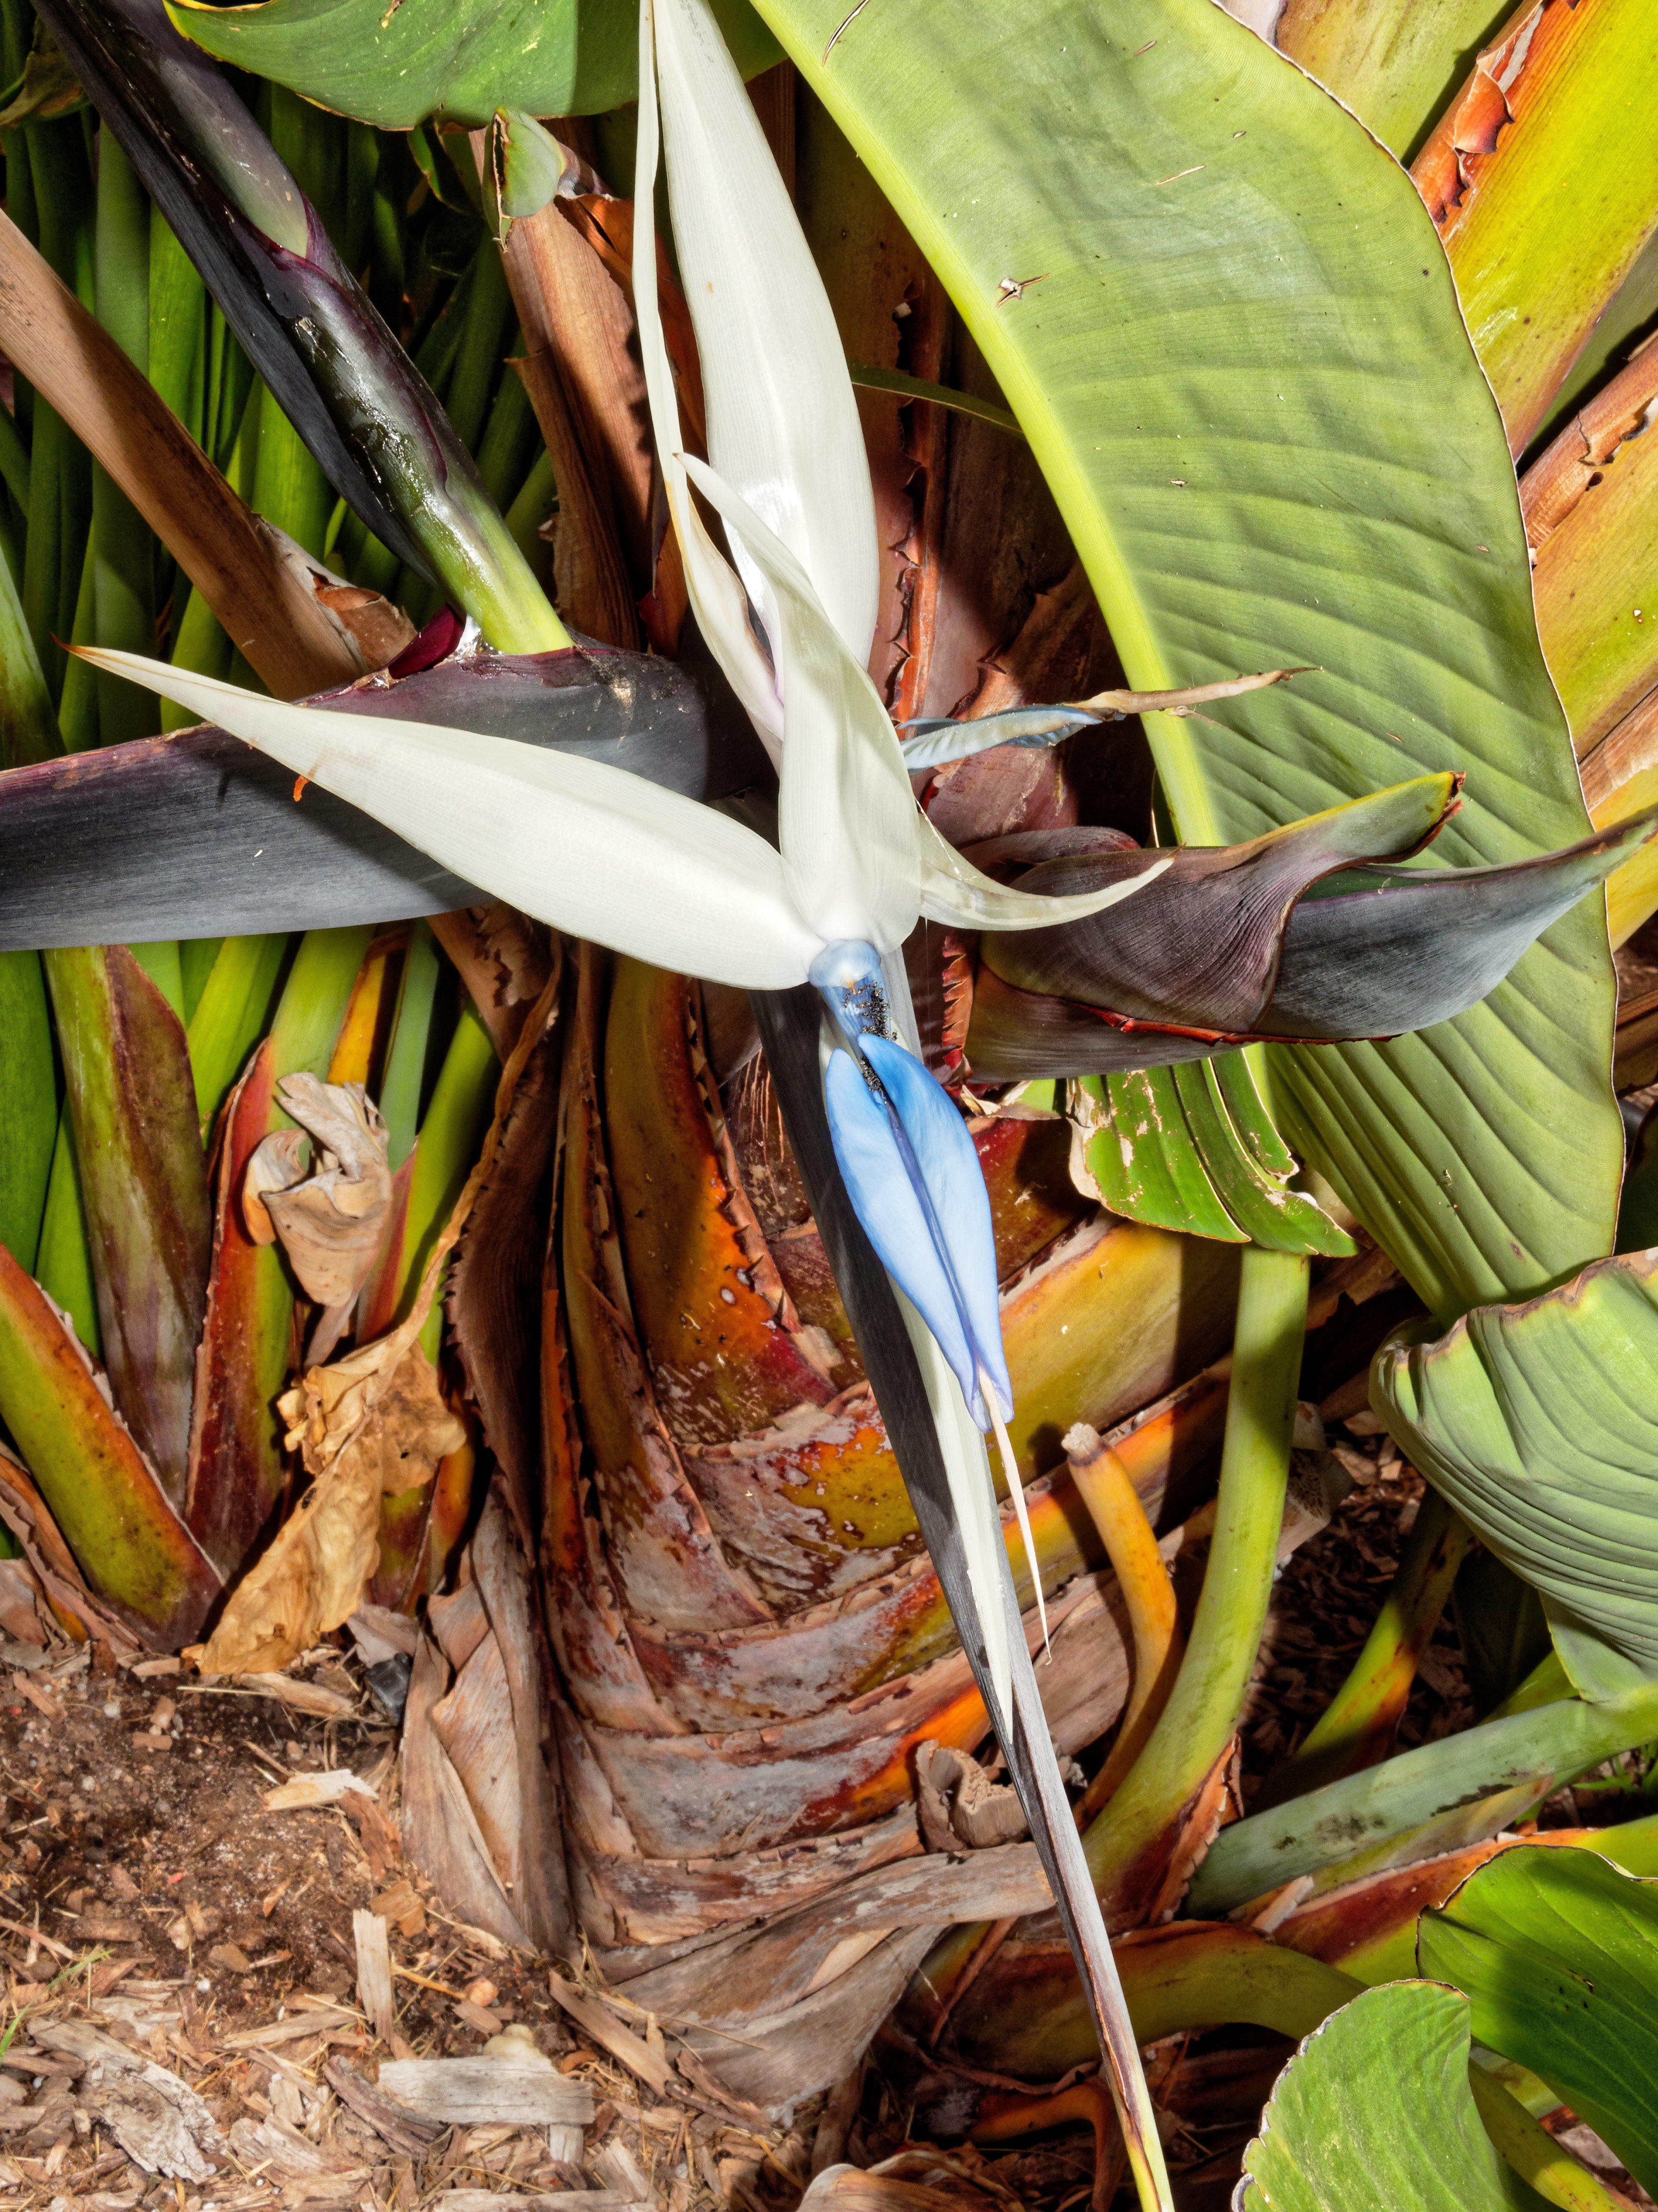 This should be Strelitzia-nicolai-4.jpeg.  Is it missing?